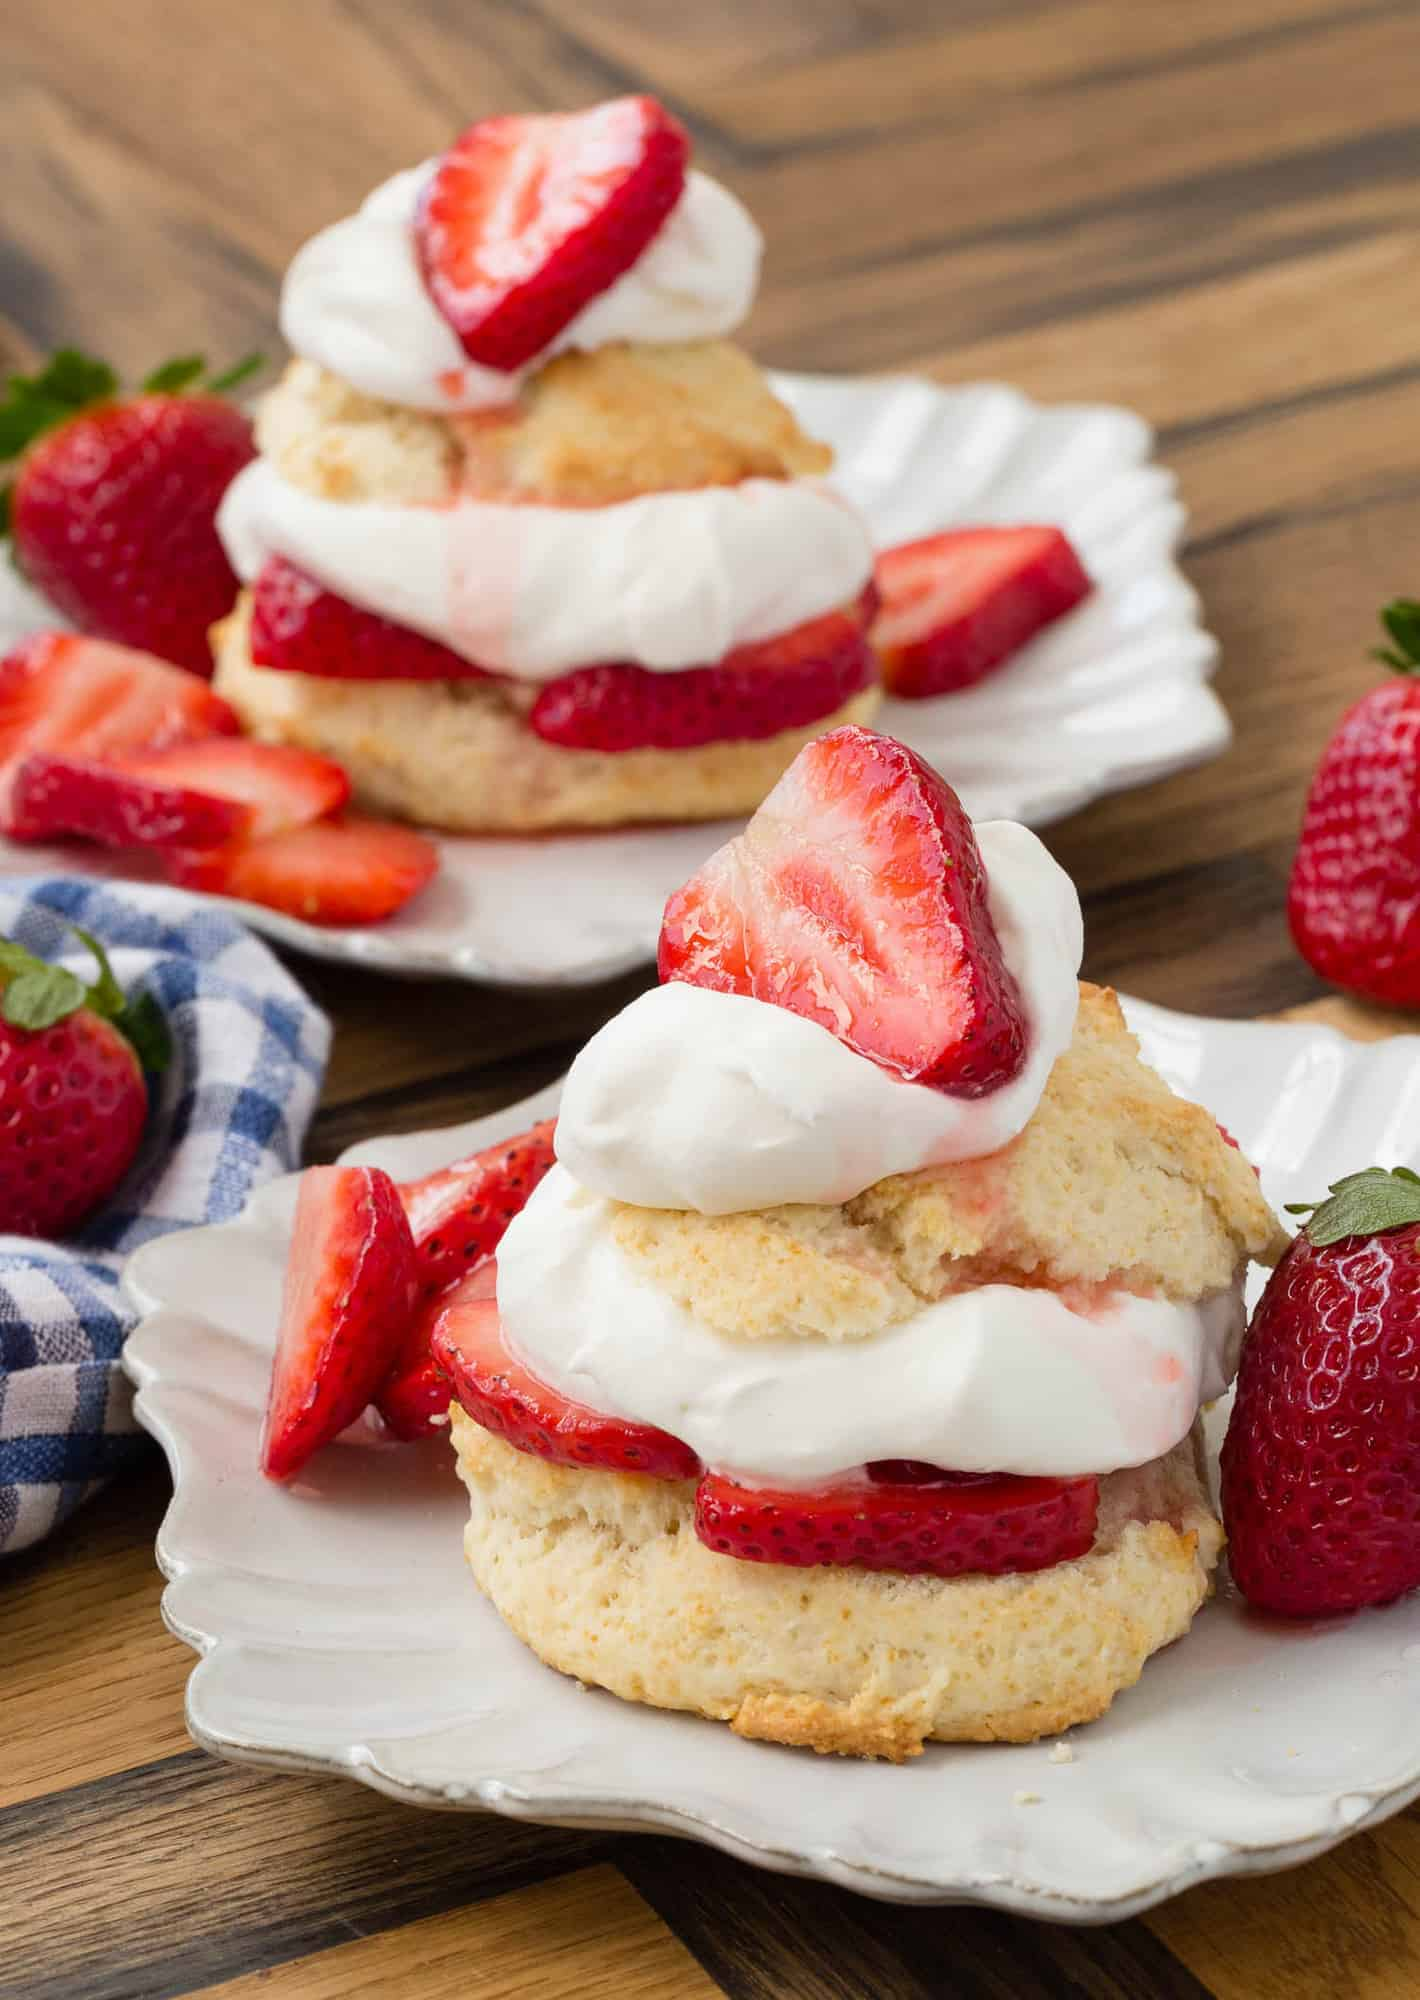 Two white plates with strawberry shortcakes with whipped cream.